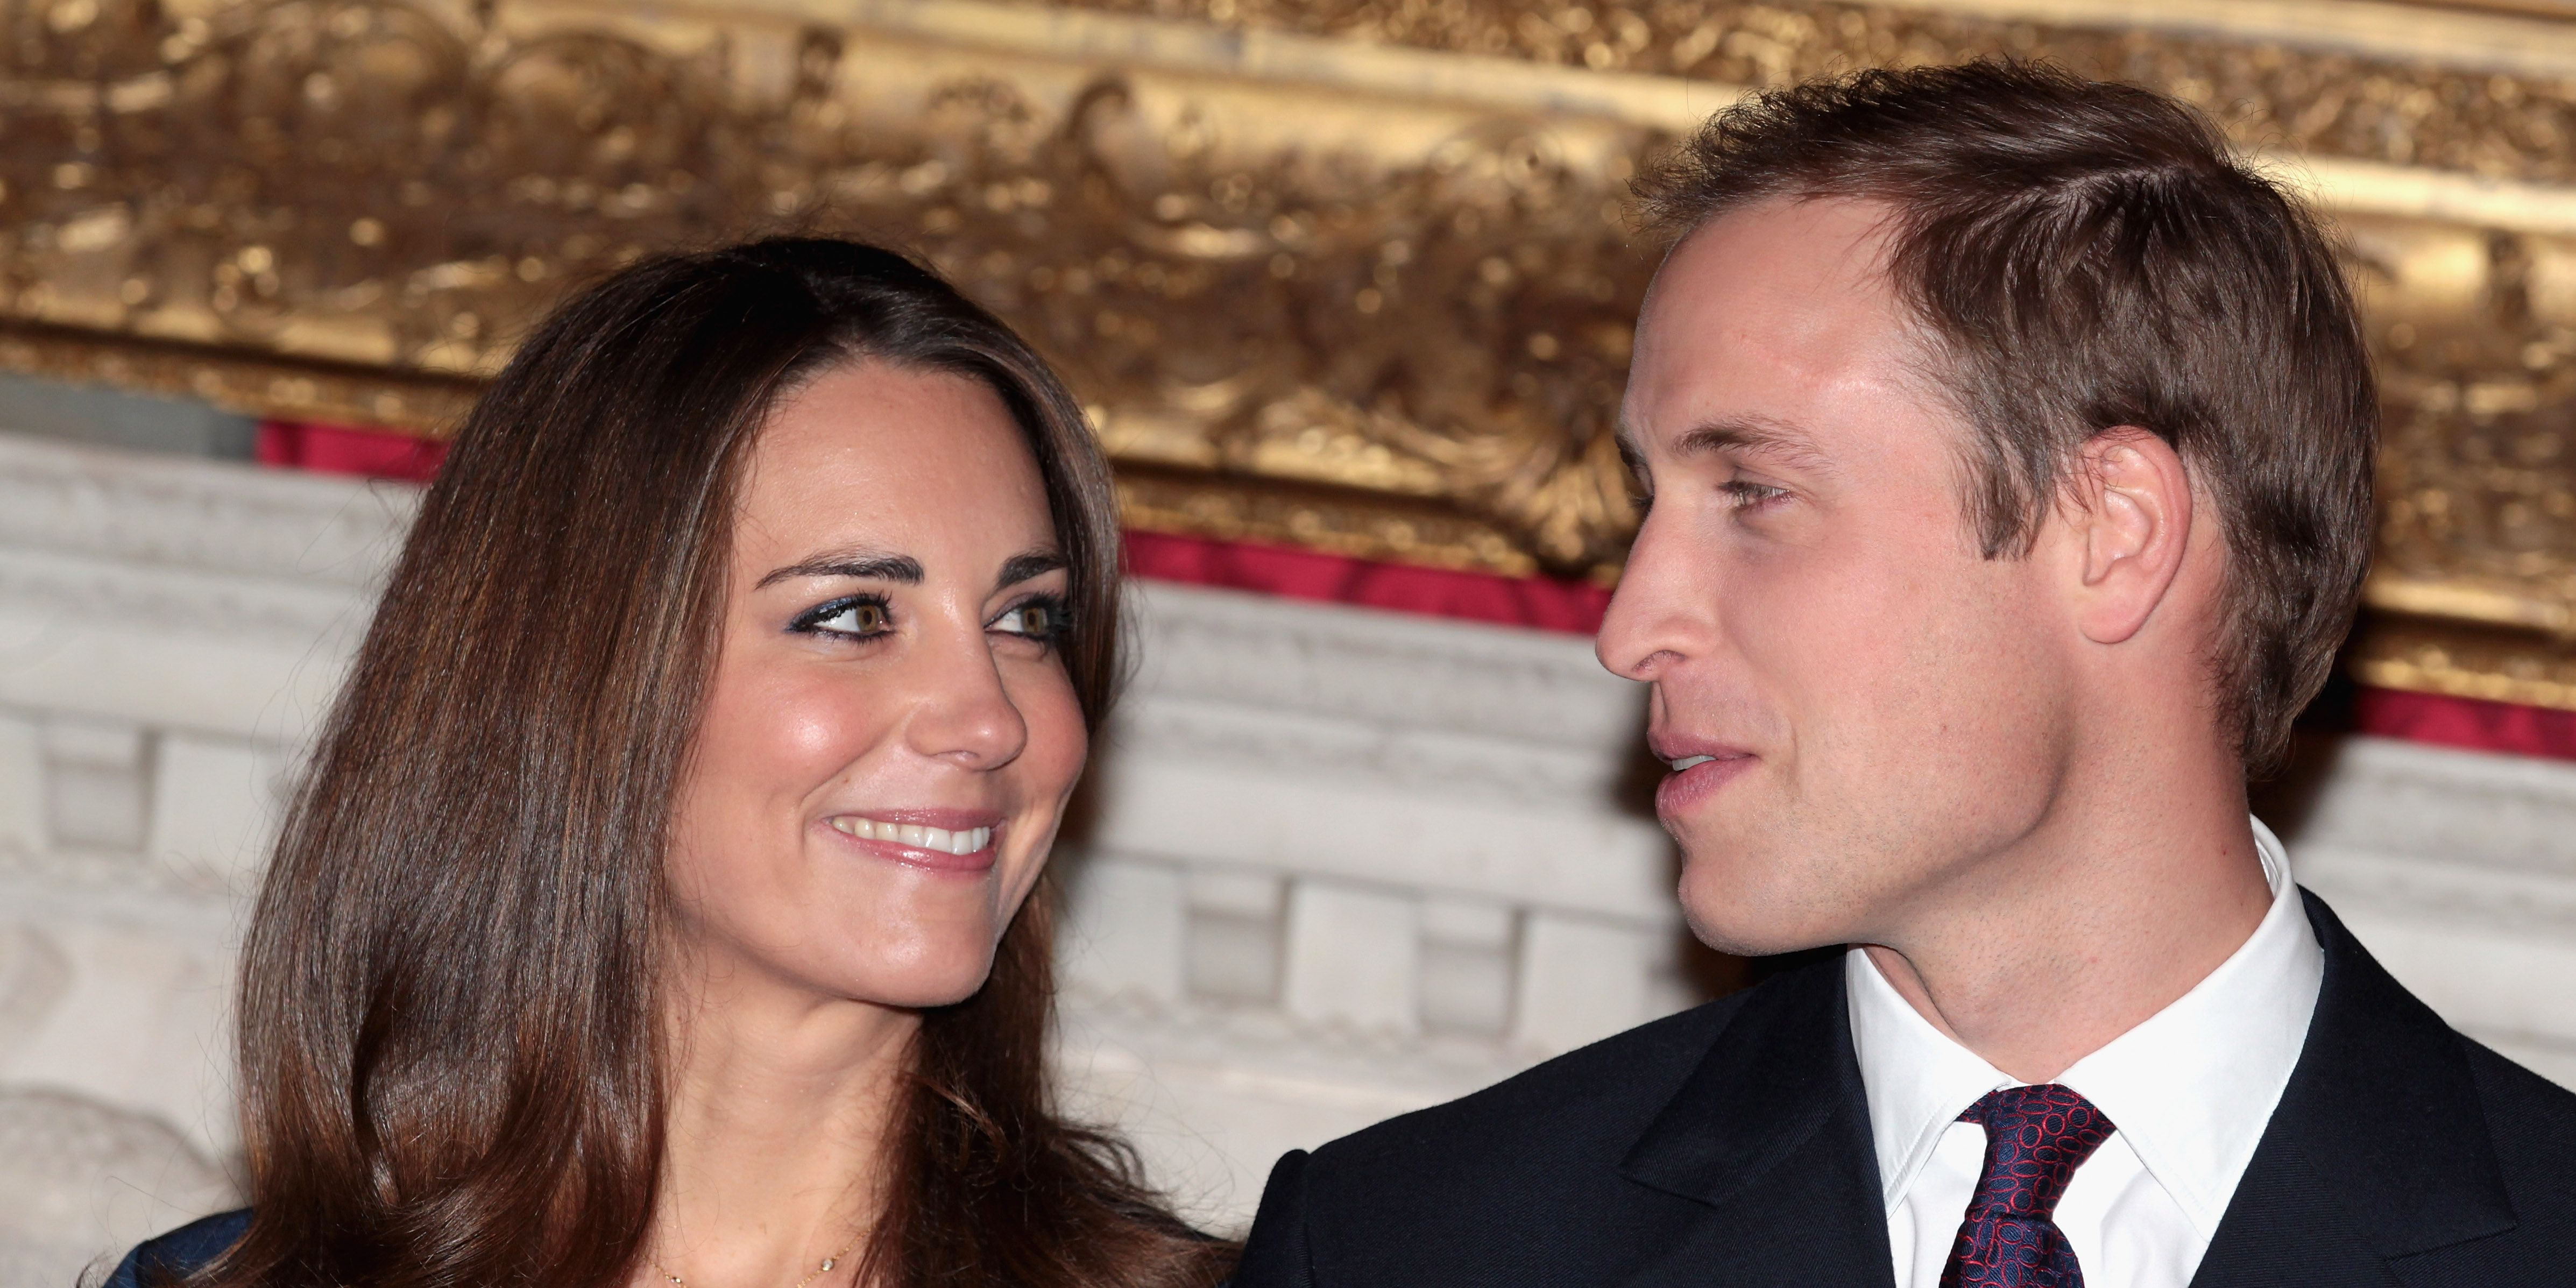 Throwback to William and Kate spilling details of their break up in their engagement interview